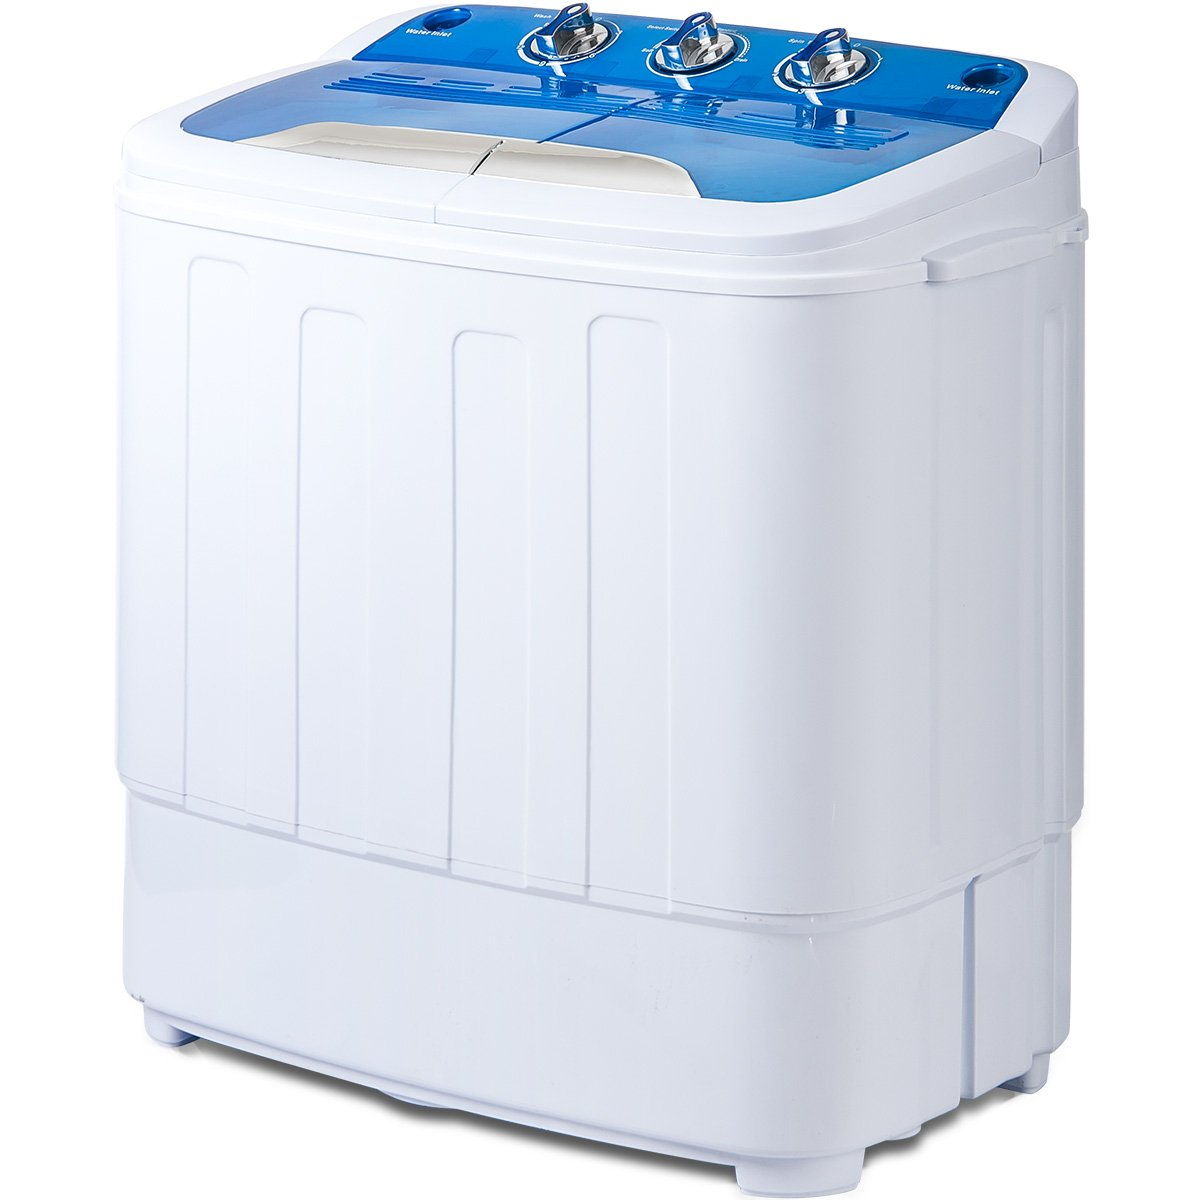 Merax Portable Mini Compact Twin Tub Washing Machine and Washer Spin Cycle, FCC Verification (Blue&White)